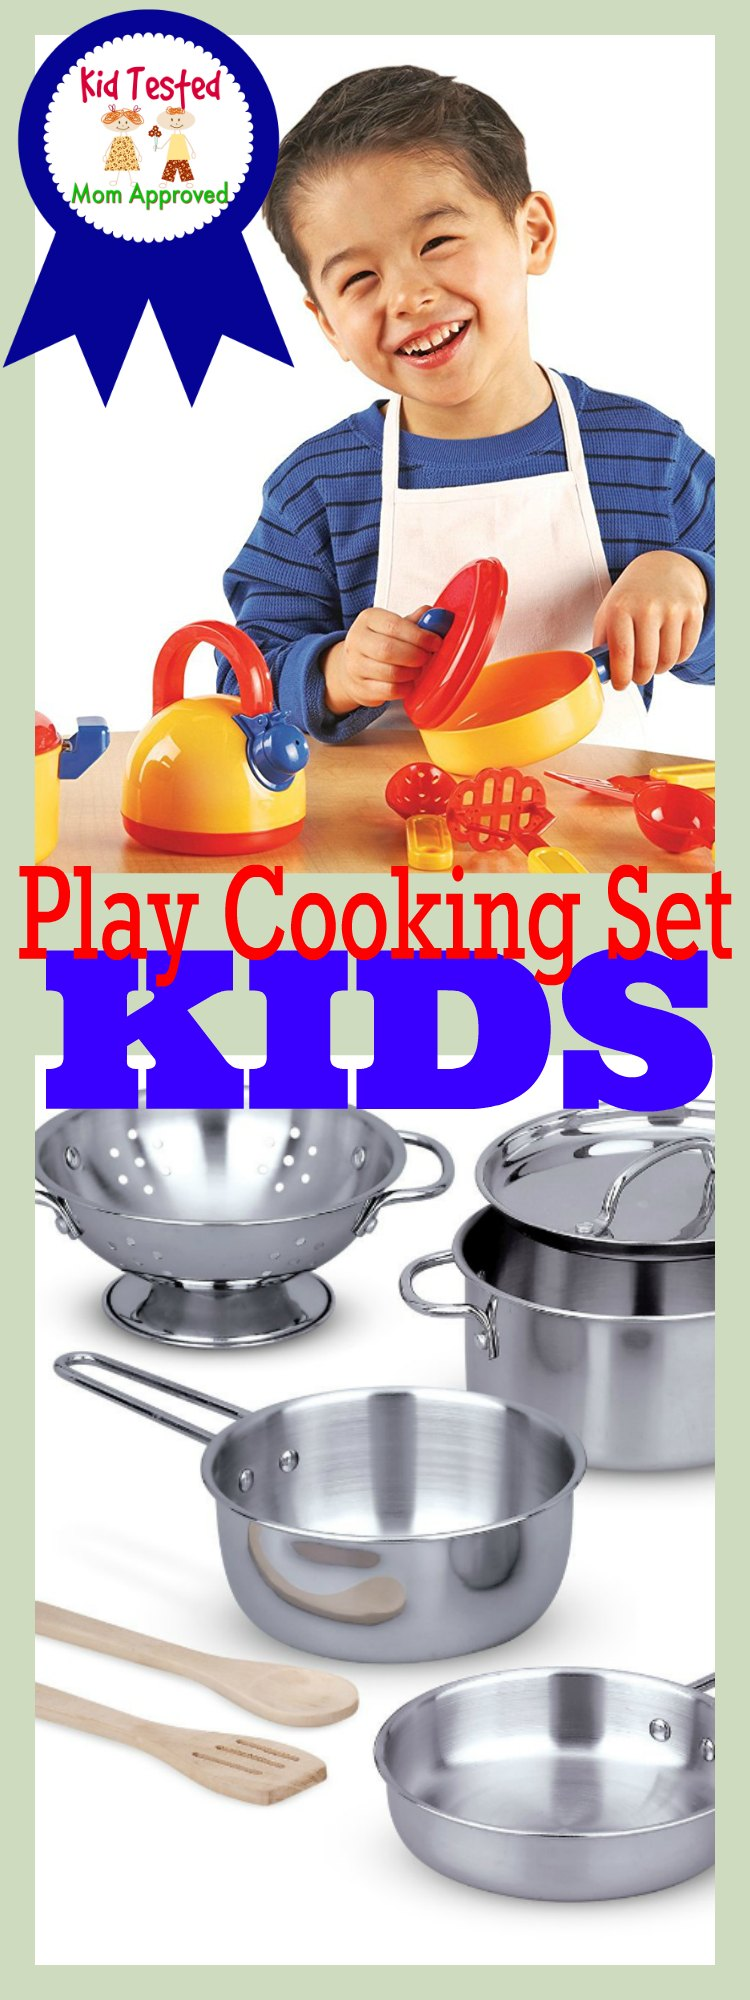 Play Cooking Set for Kids